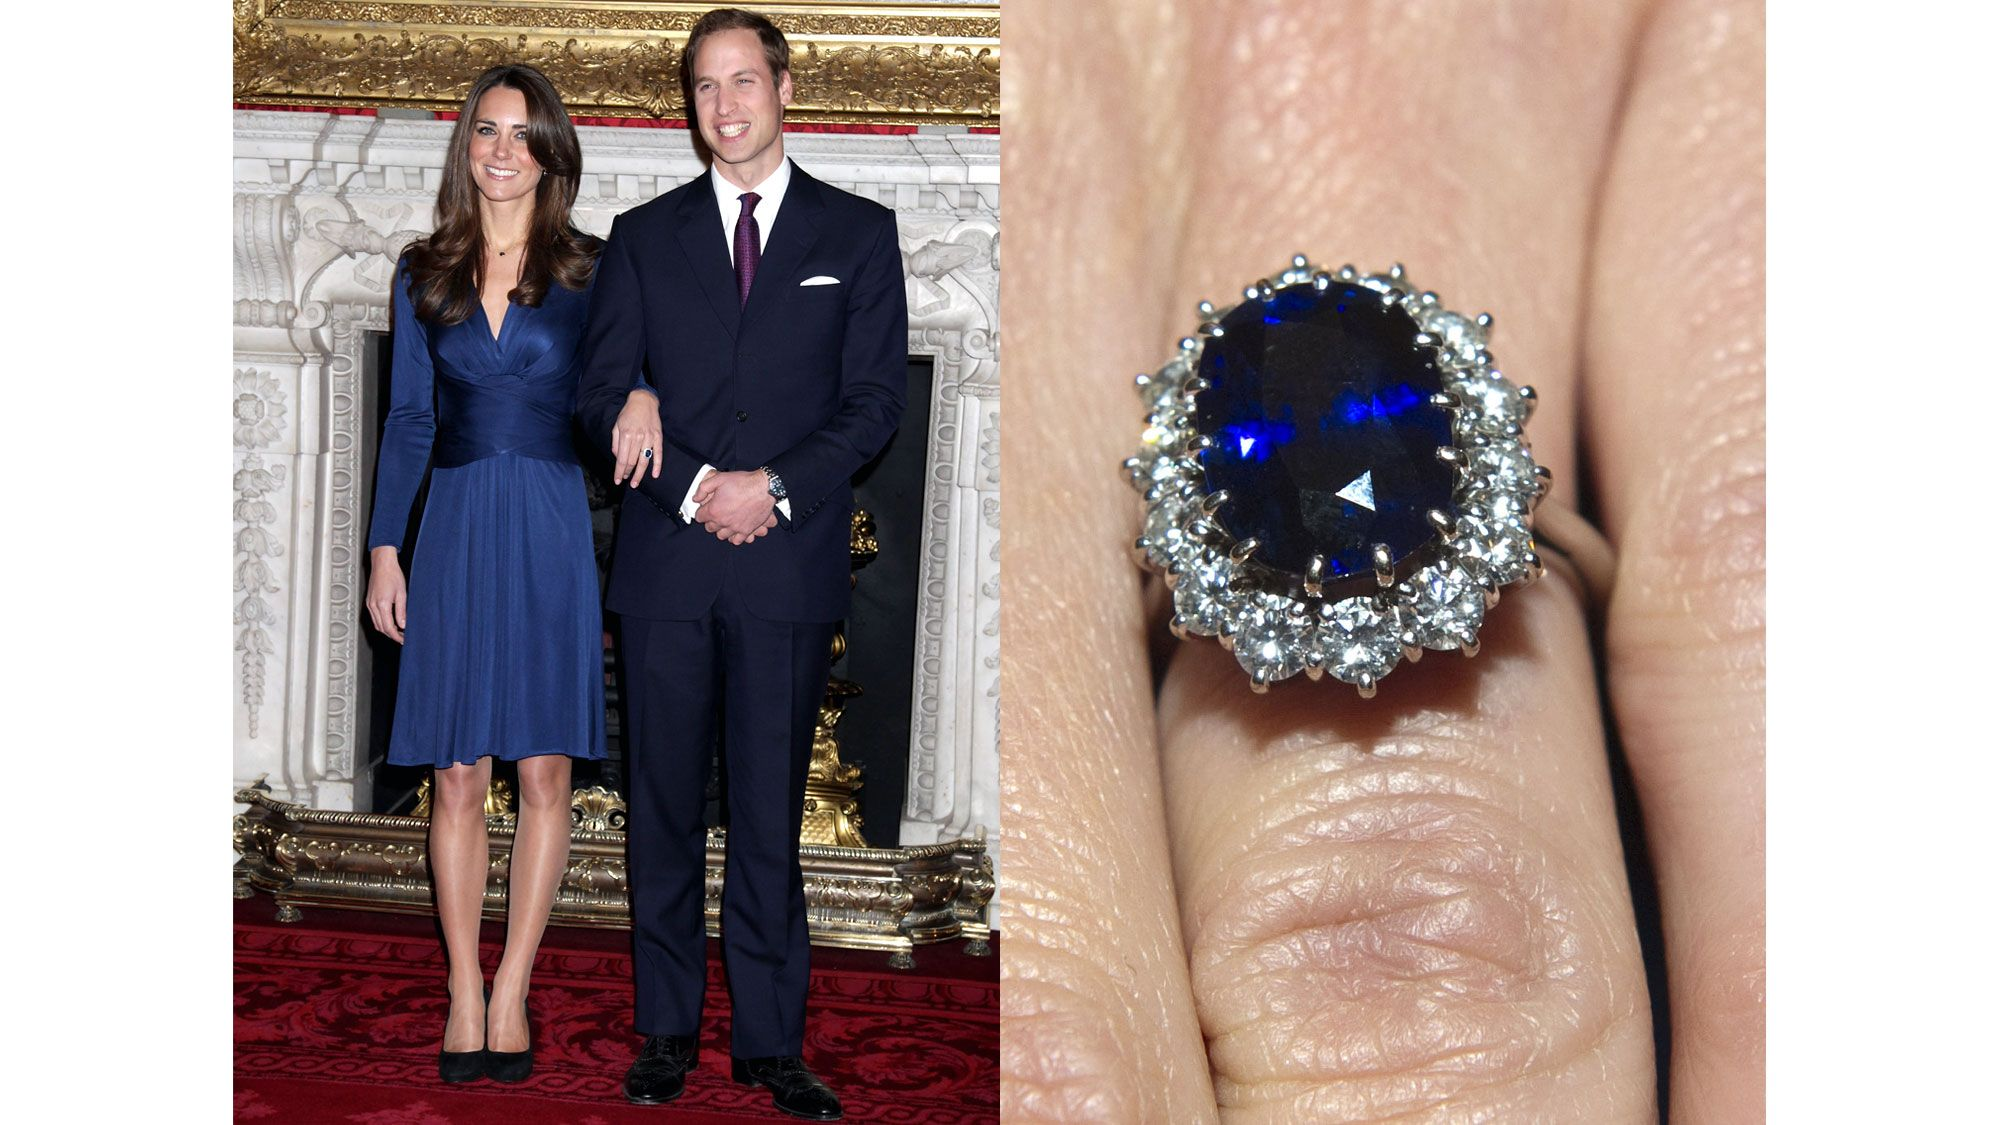 images behind ring middletons s rings news getty engagement image australia middleton vogue brides kate credit the history